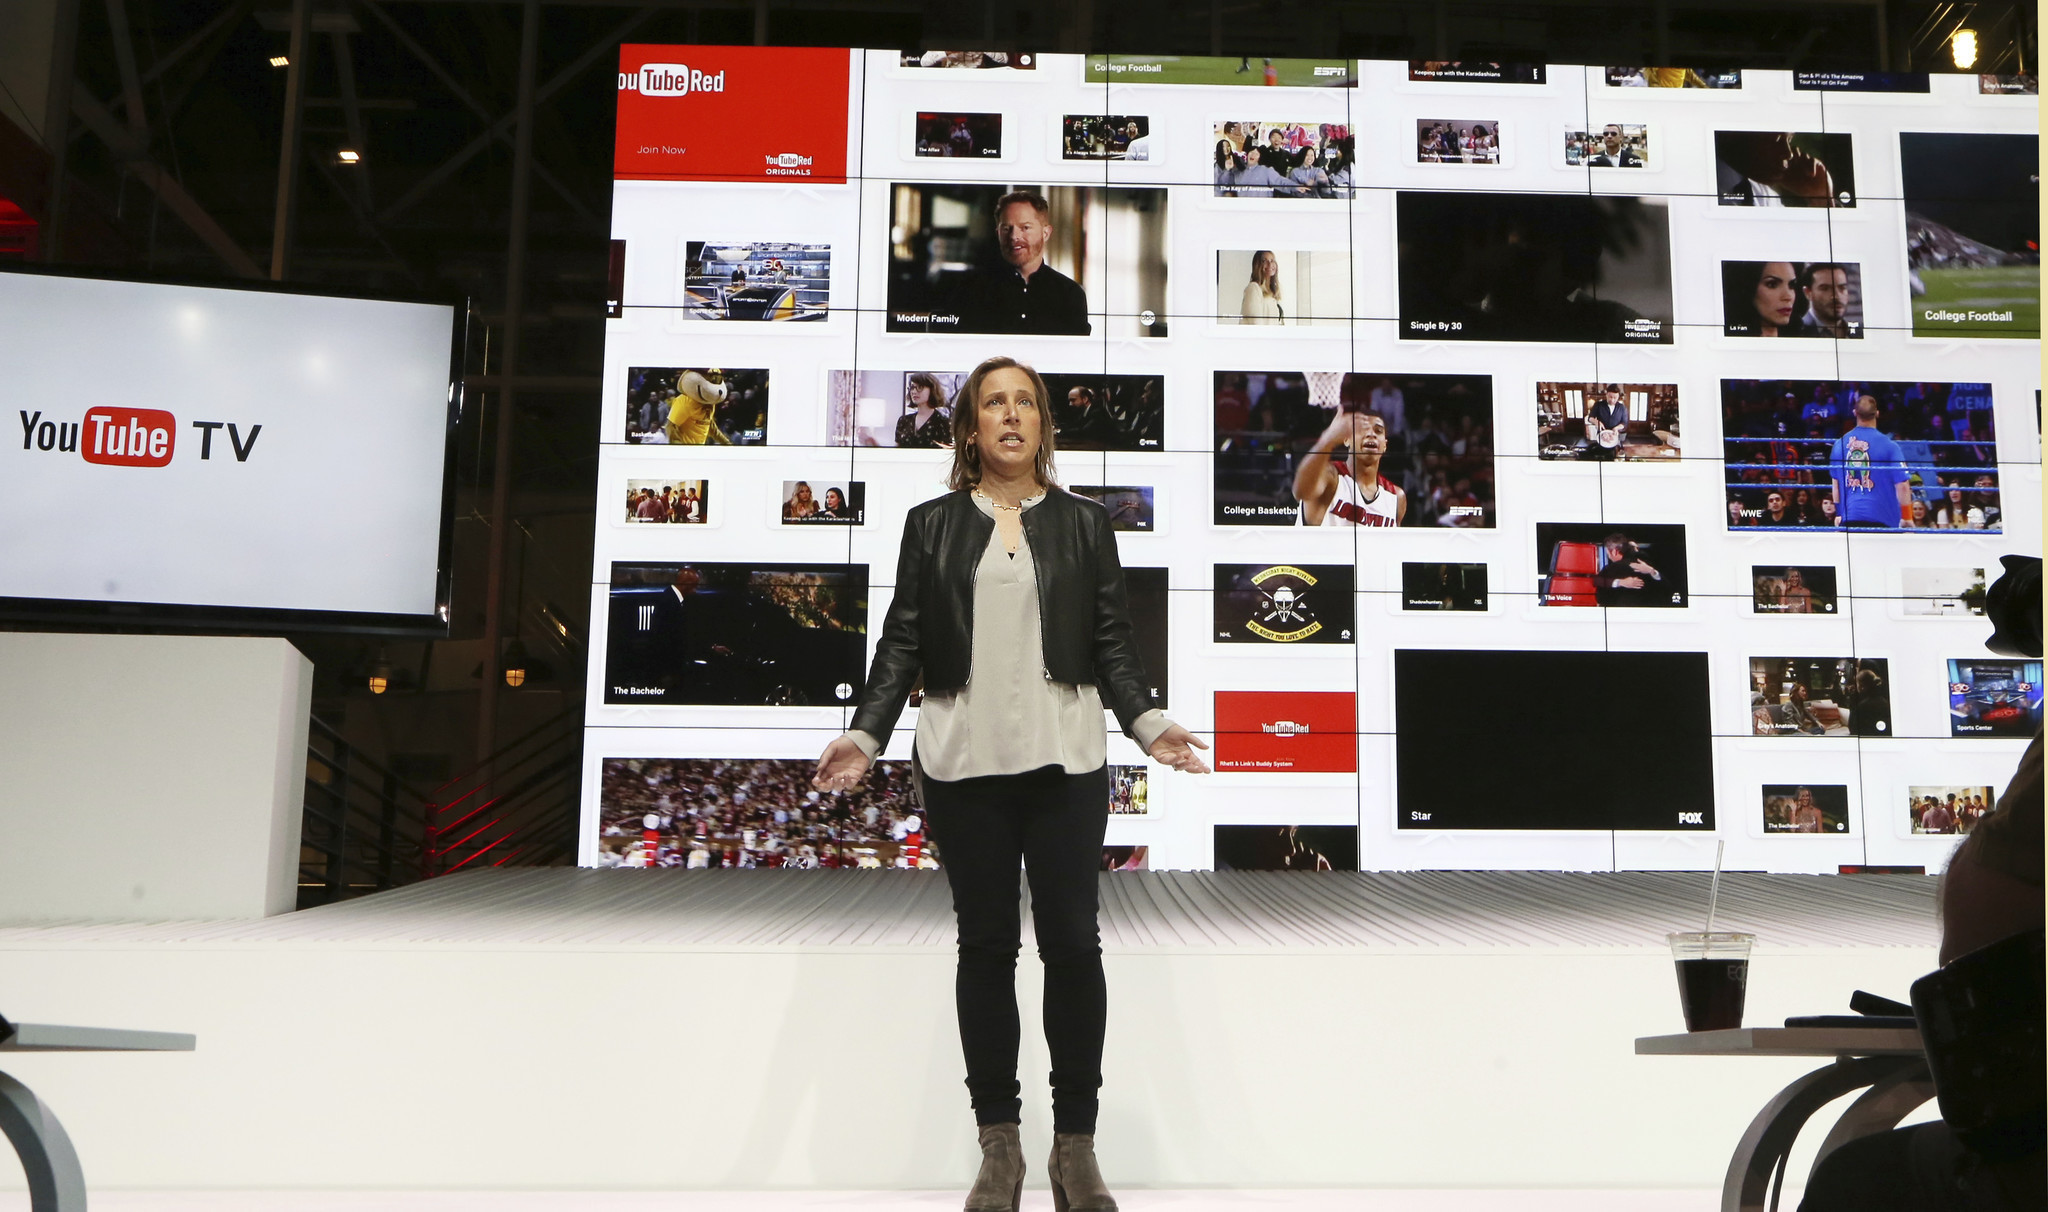 youtube tv - photo #31